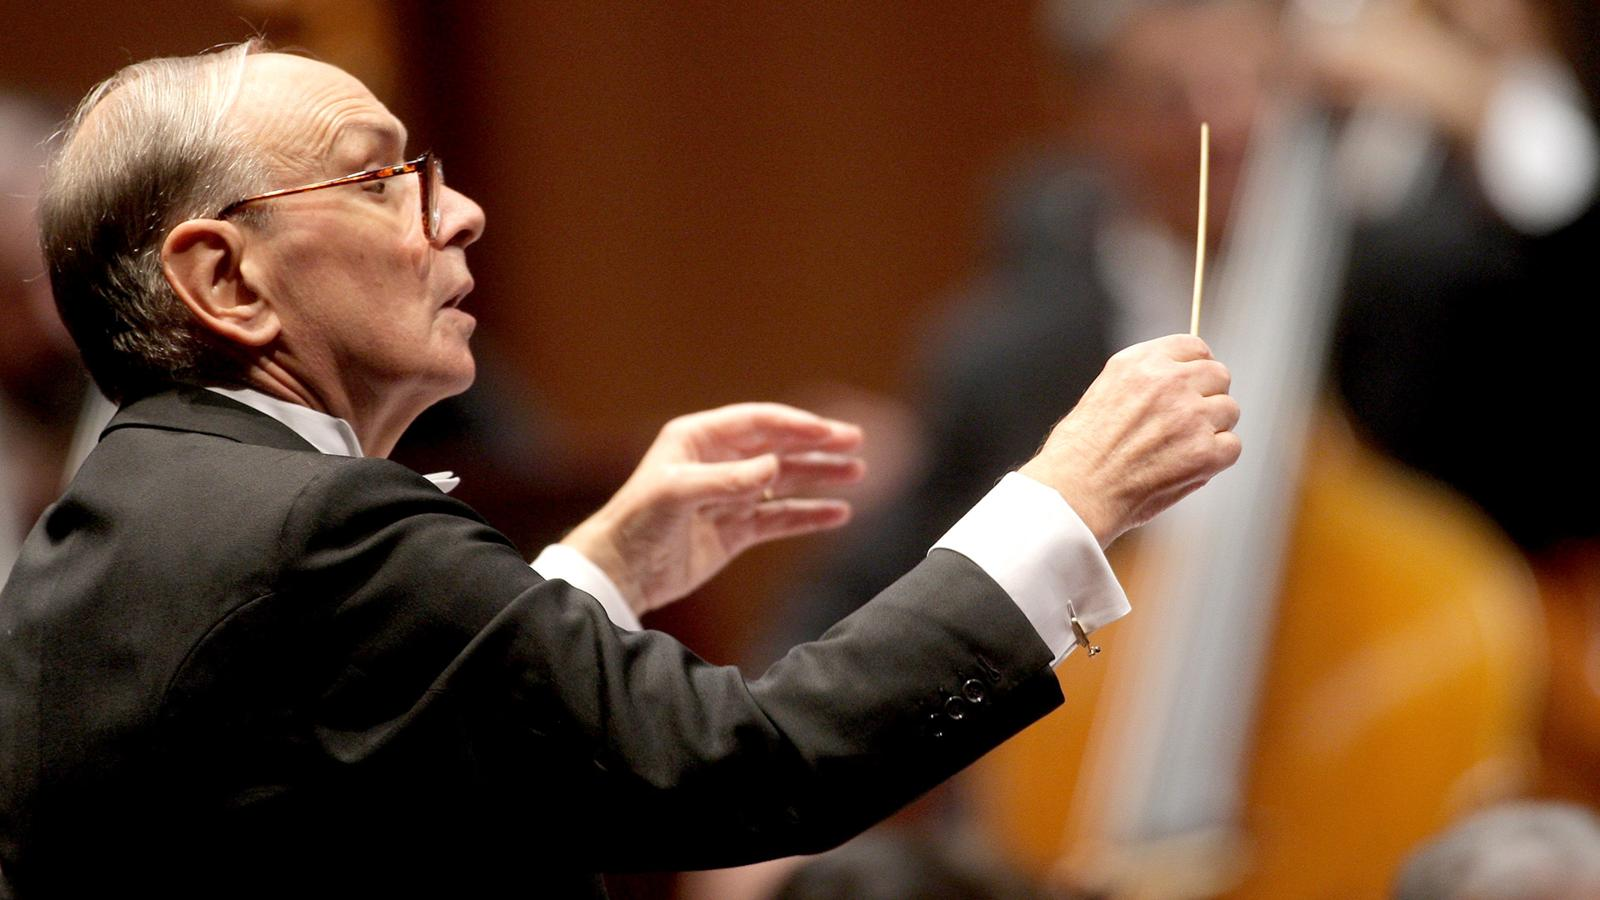 2nd Rome Film Festival - Concert Directed By Ennio Morricone